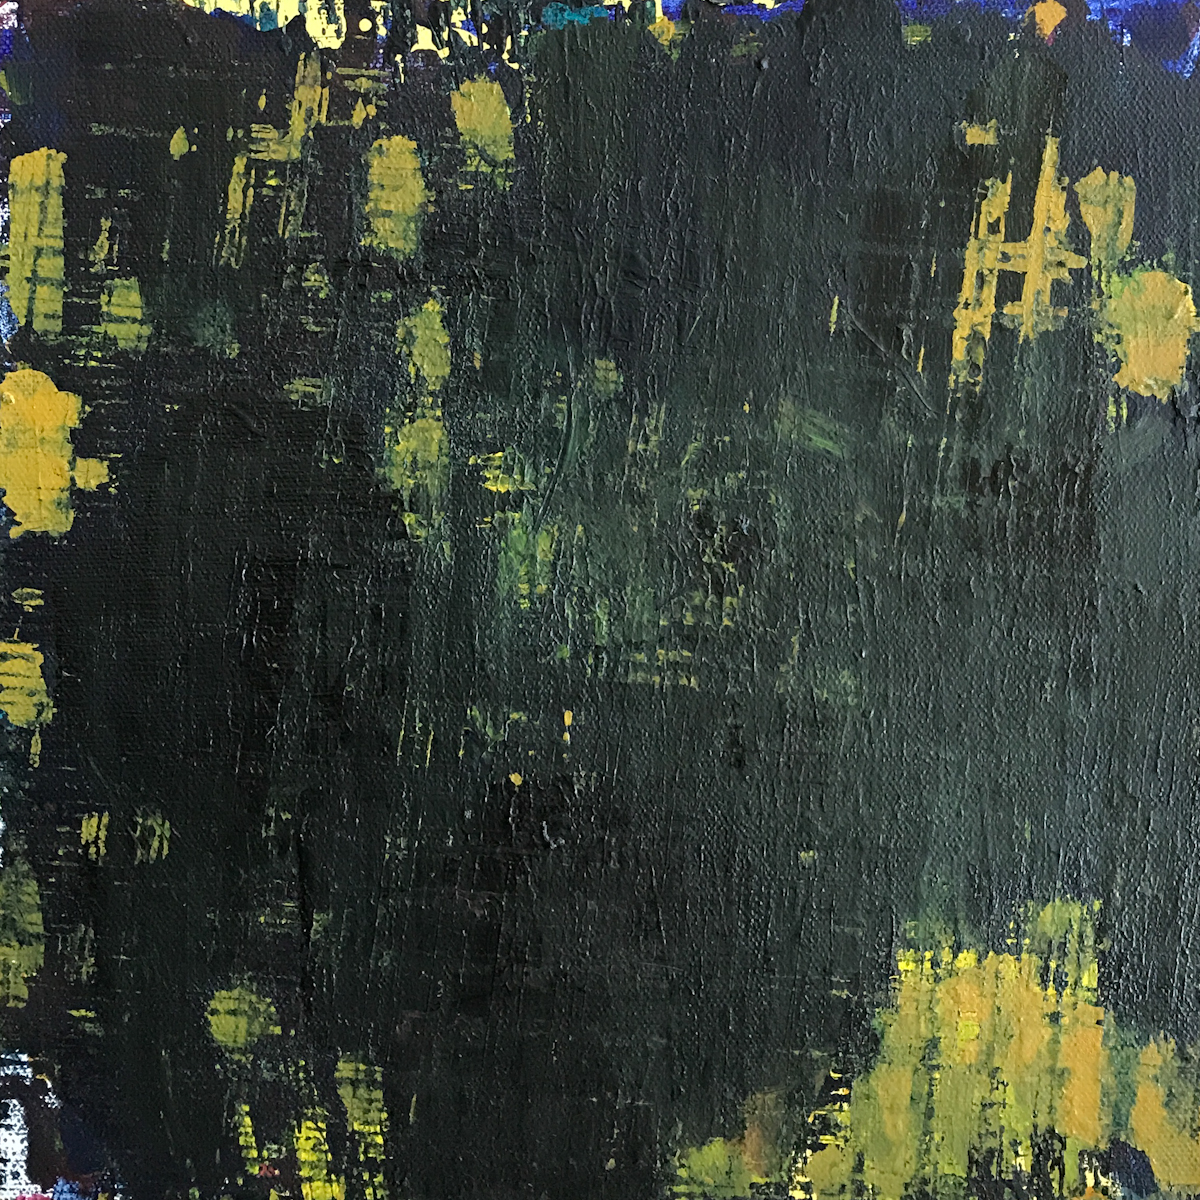 Night Series Acrylic on Canvas 06 12x12